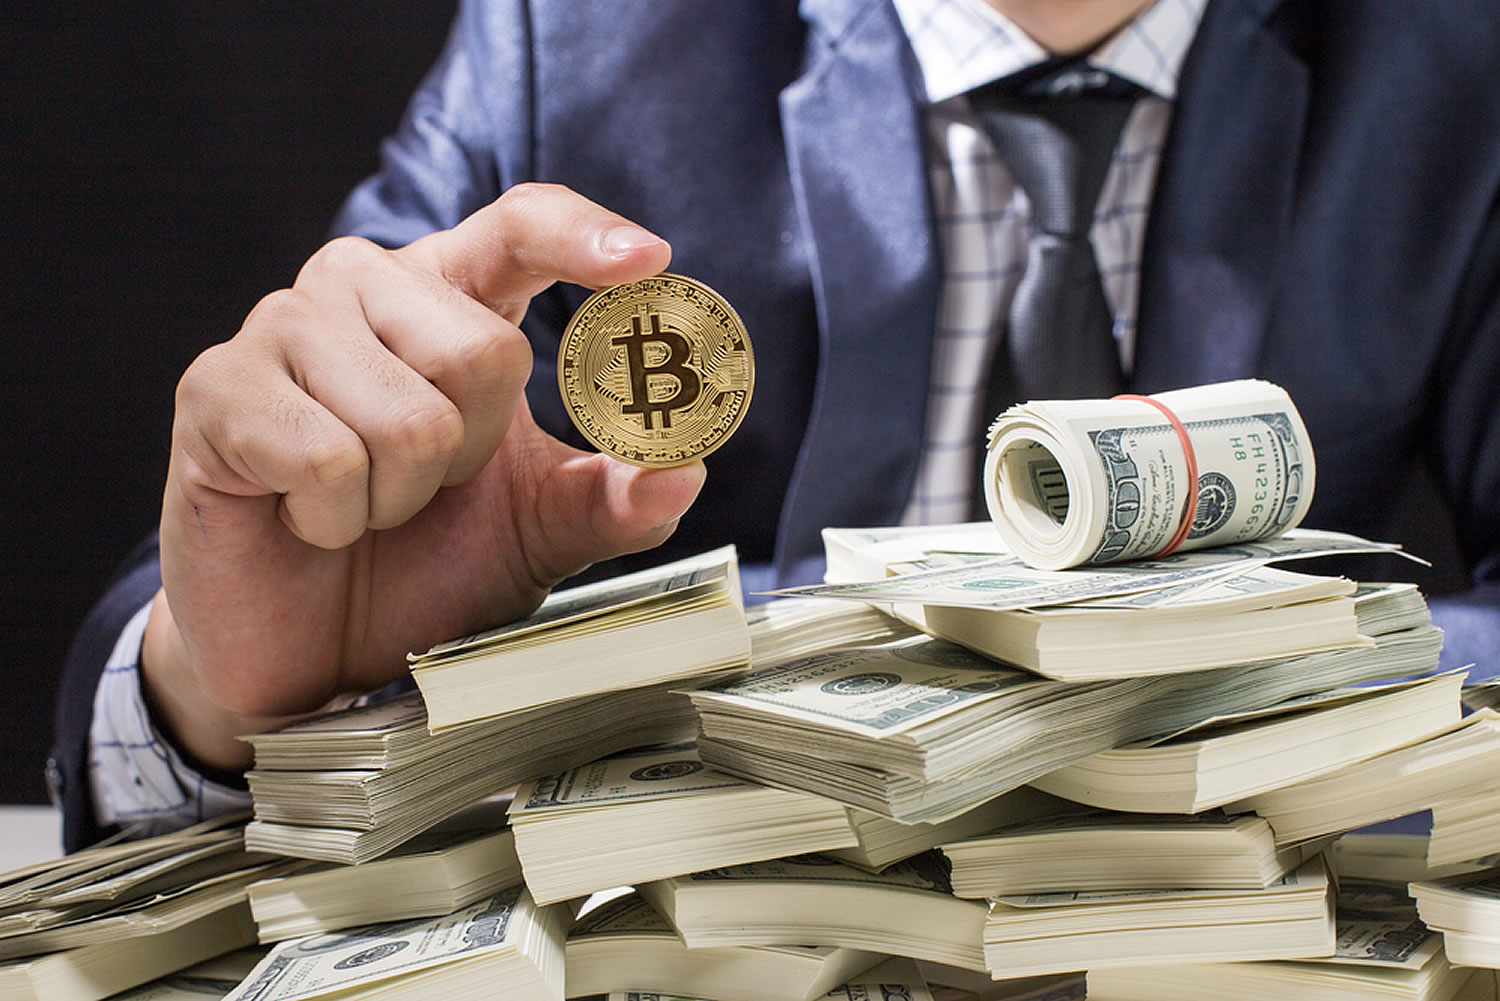 68% of Global Millionaires Already Invested or Plan to Invest in Crypto by 2022: Survey